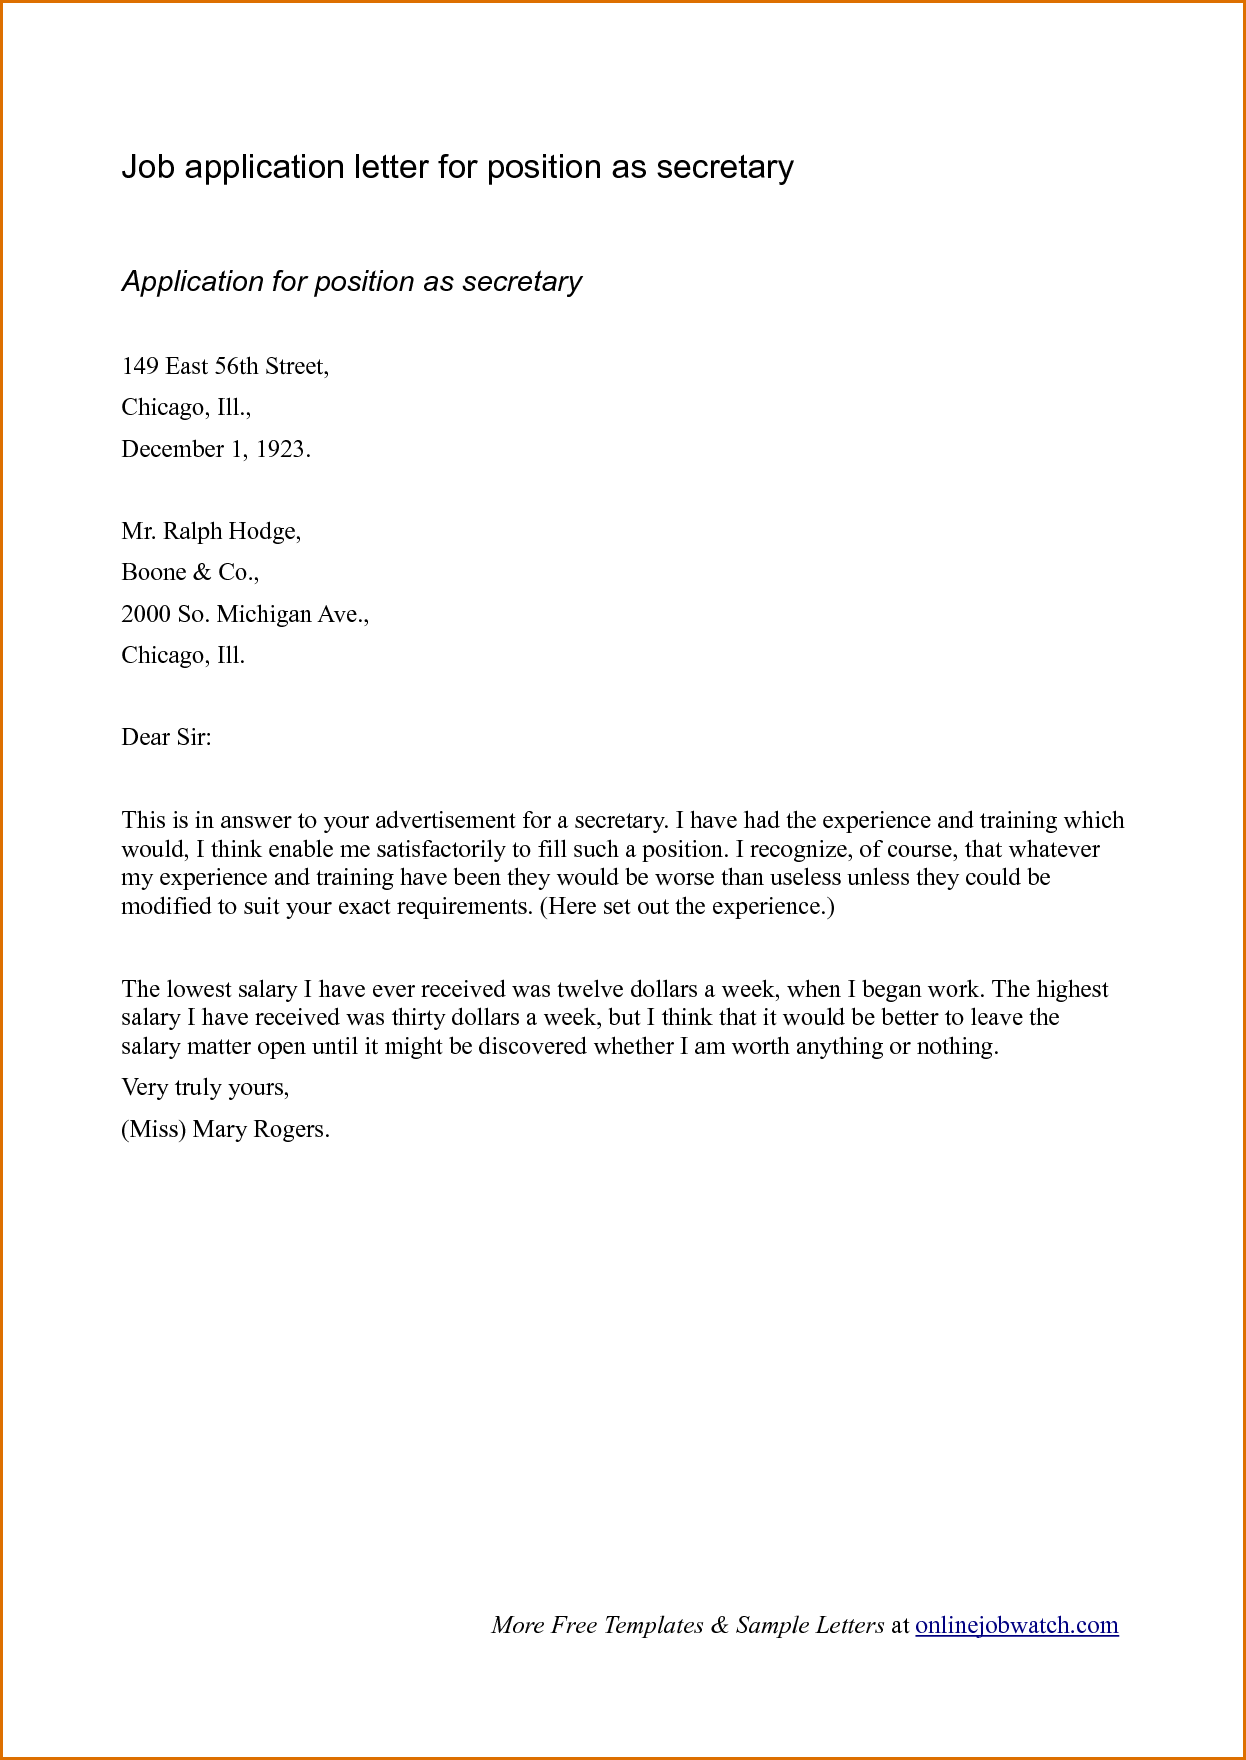 Sample cover letter format for job application for Well written cover letters for job applications